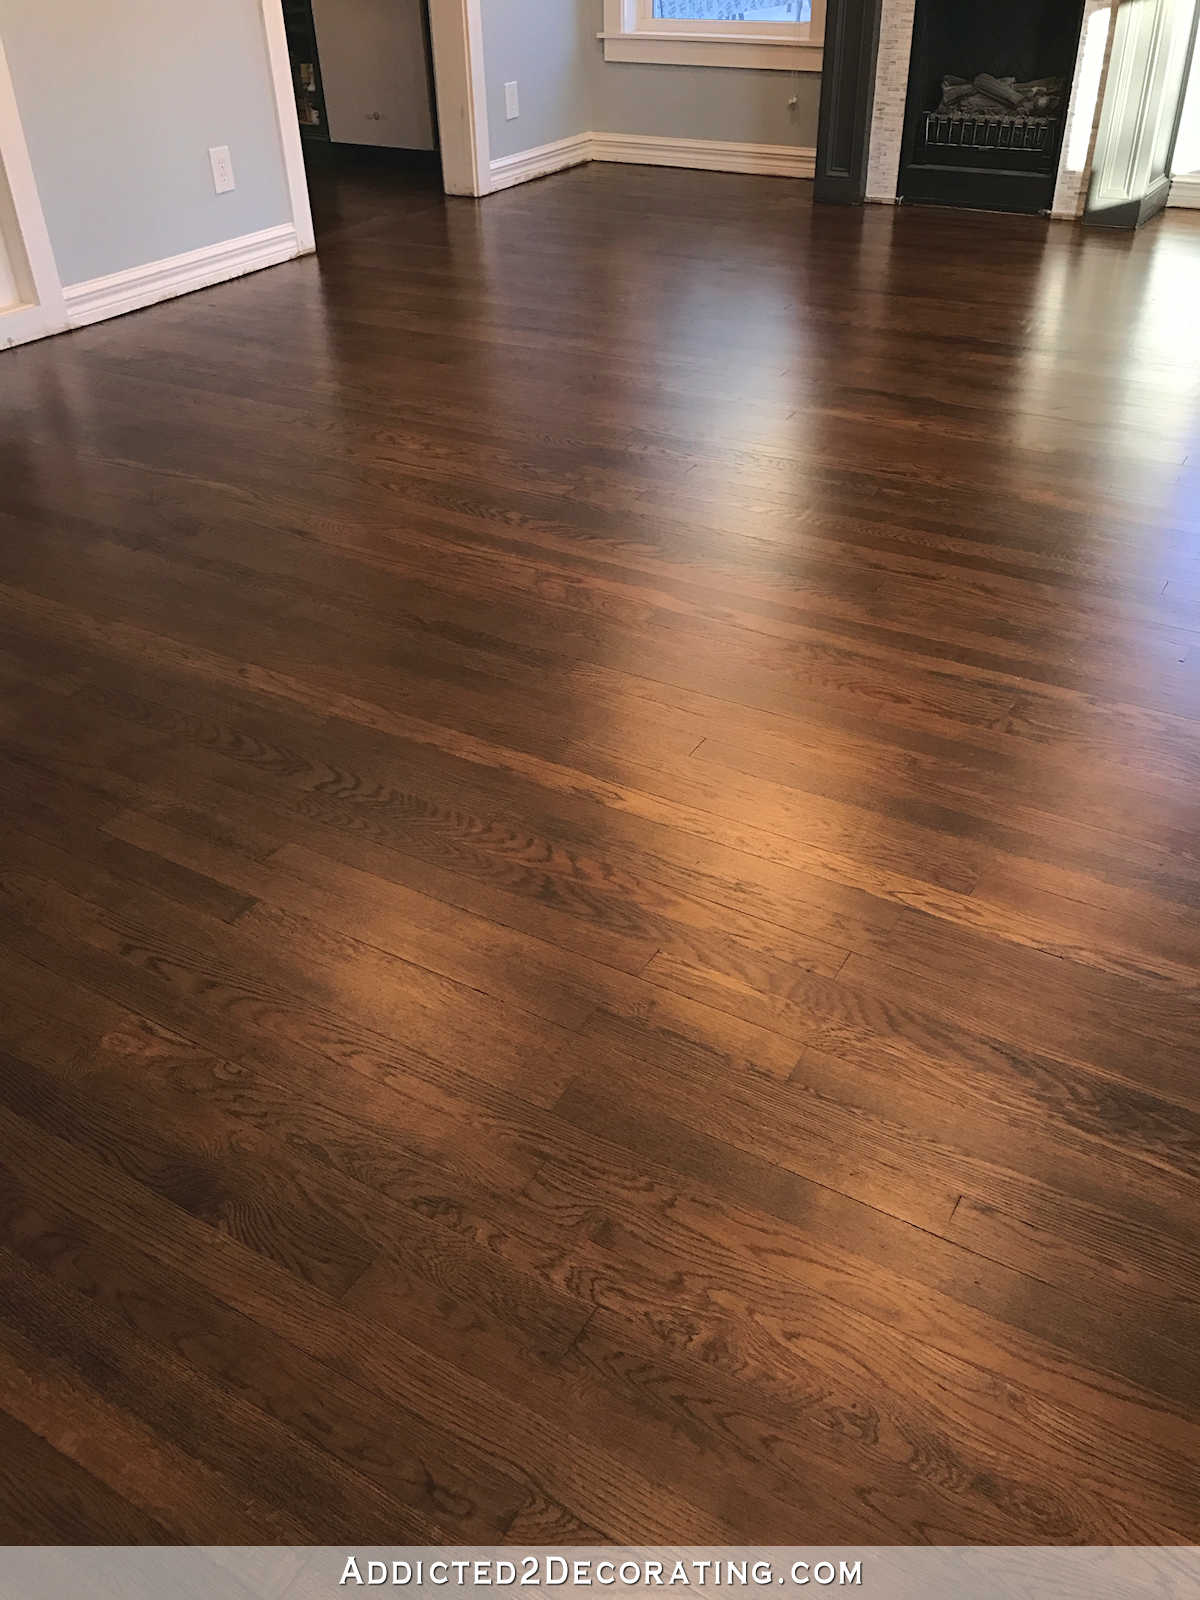 oak flooring refinished red oak hardwood floors - entryway and living room FHTMBFG